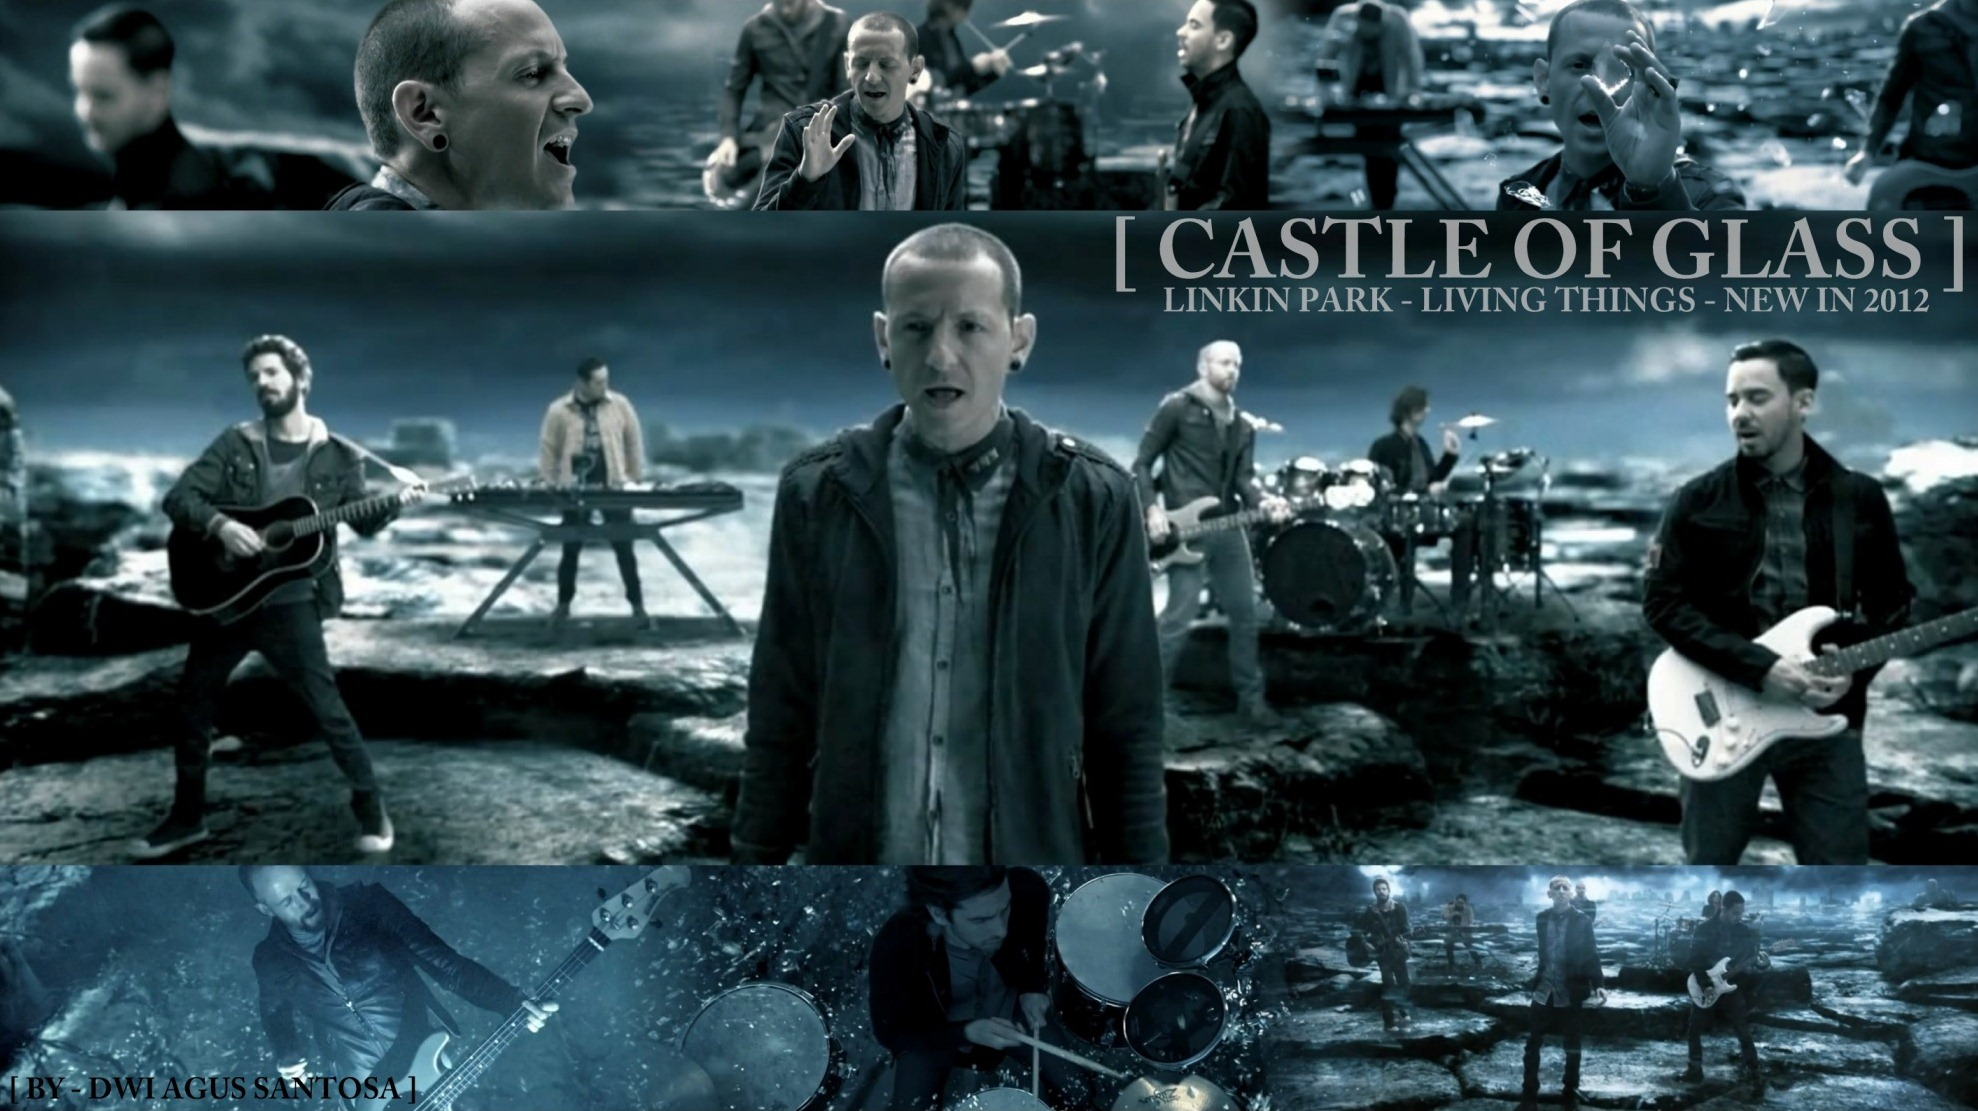 Linkin park castle of glass (featured in medal of honor.